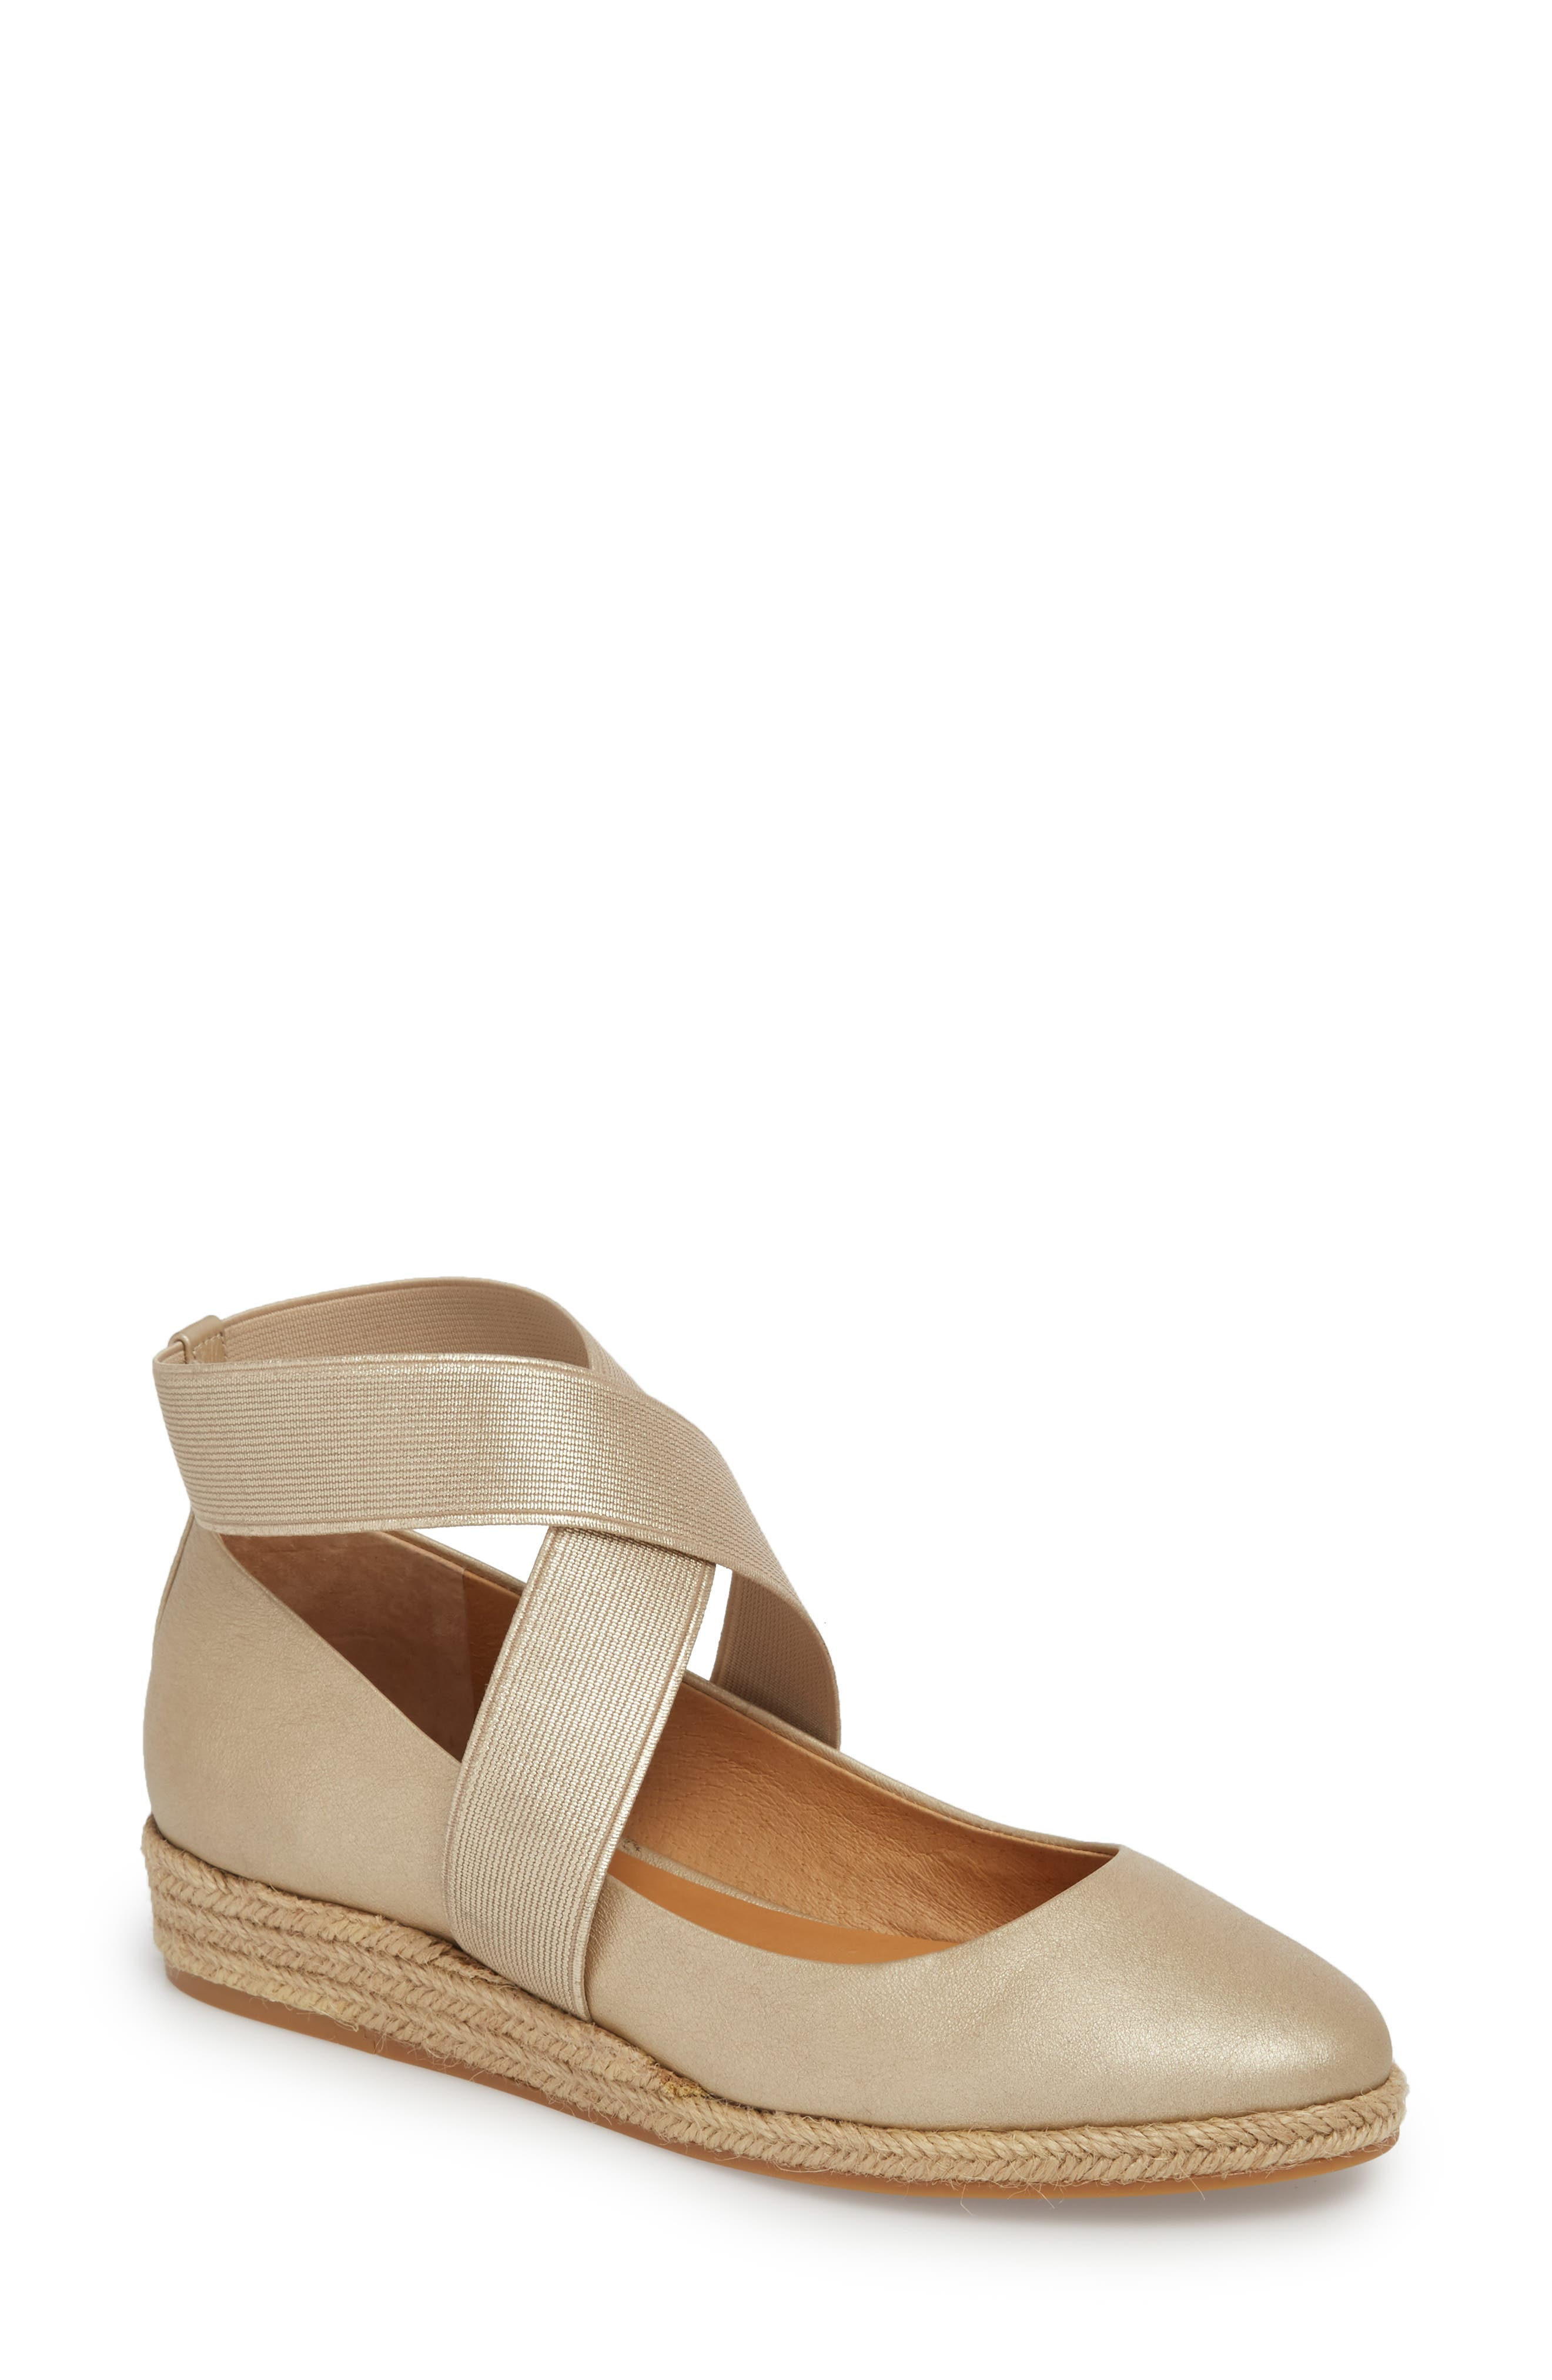 Bellah Espadrille Wedge,                         Main,                         color, Soft Gold Leather